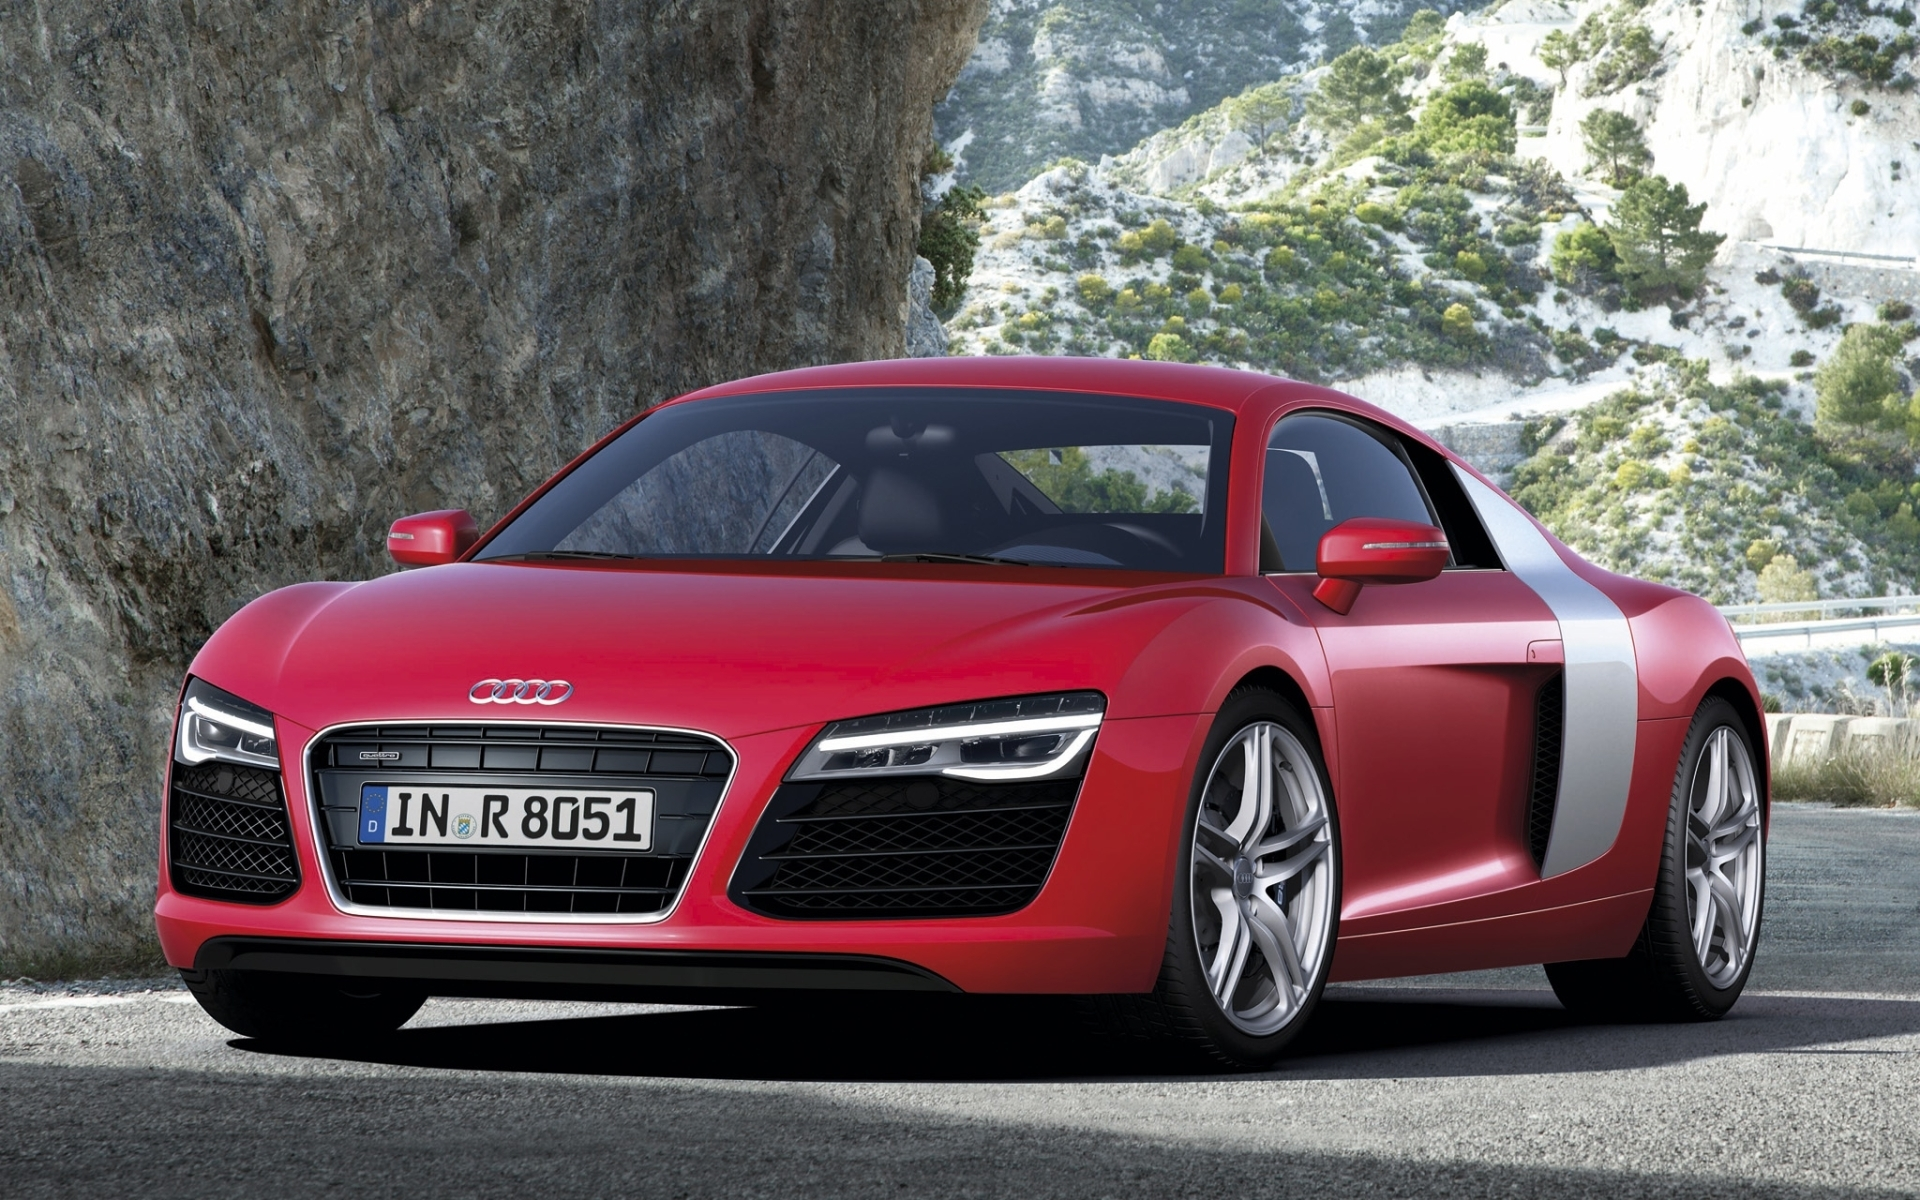 Cool photo of Audi R8, picture of Audi R8, a luxury car ...